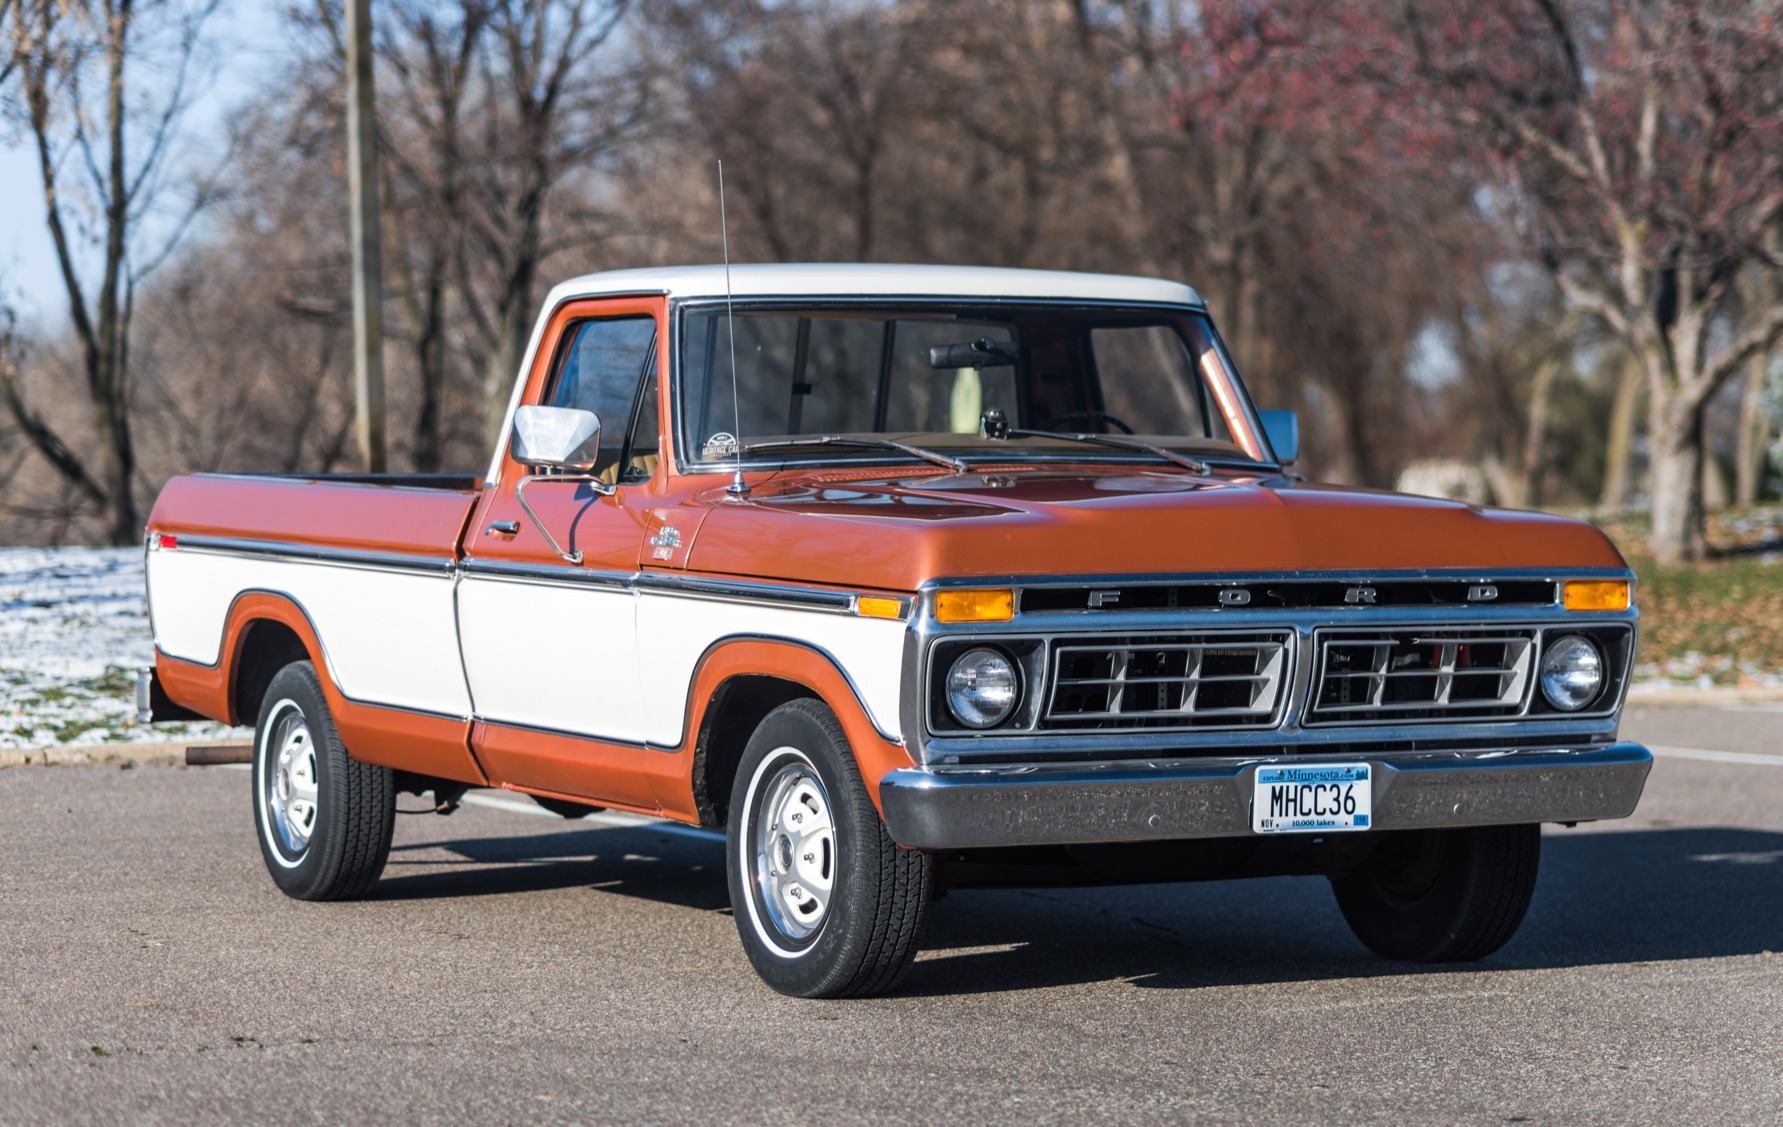 hight resolution of 1977 ford f 150 xlt ranger for sale on bat auctions closed on december 5 2018 lot 14 579 bring a trailer